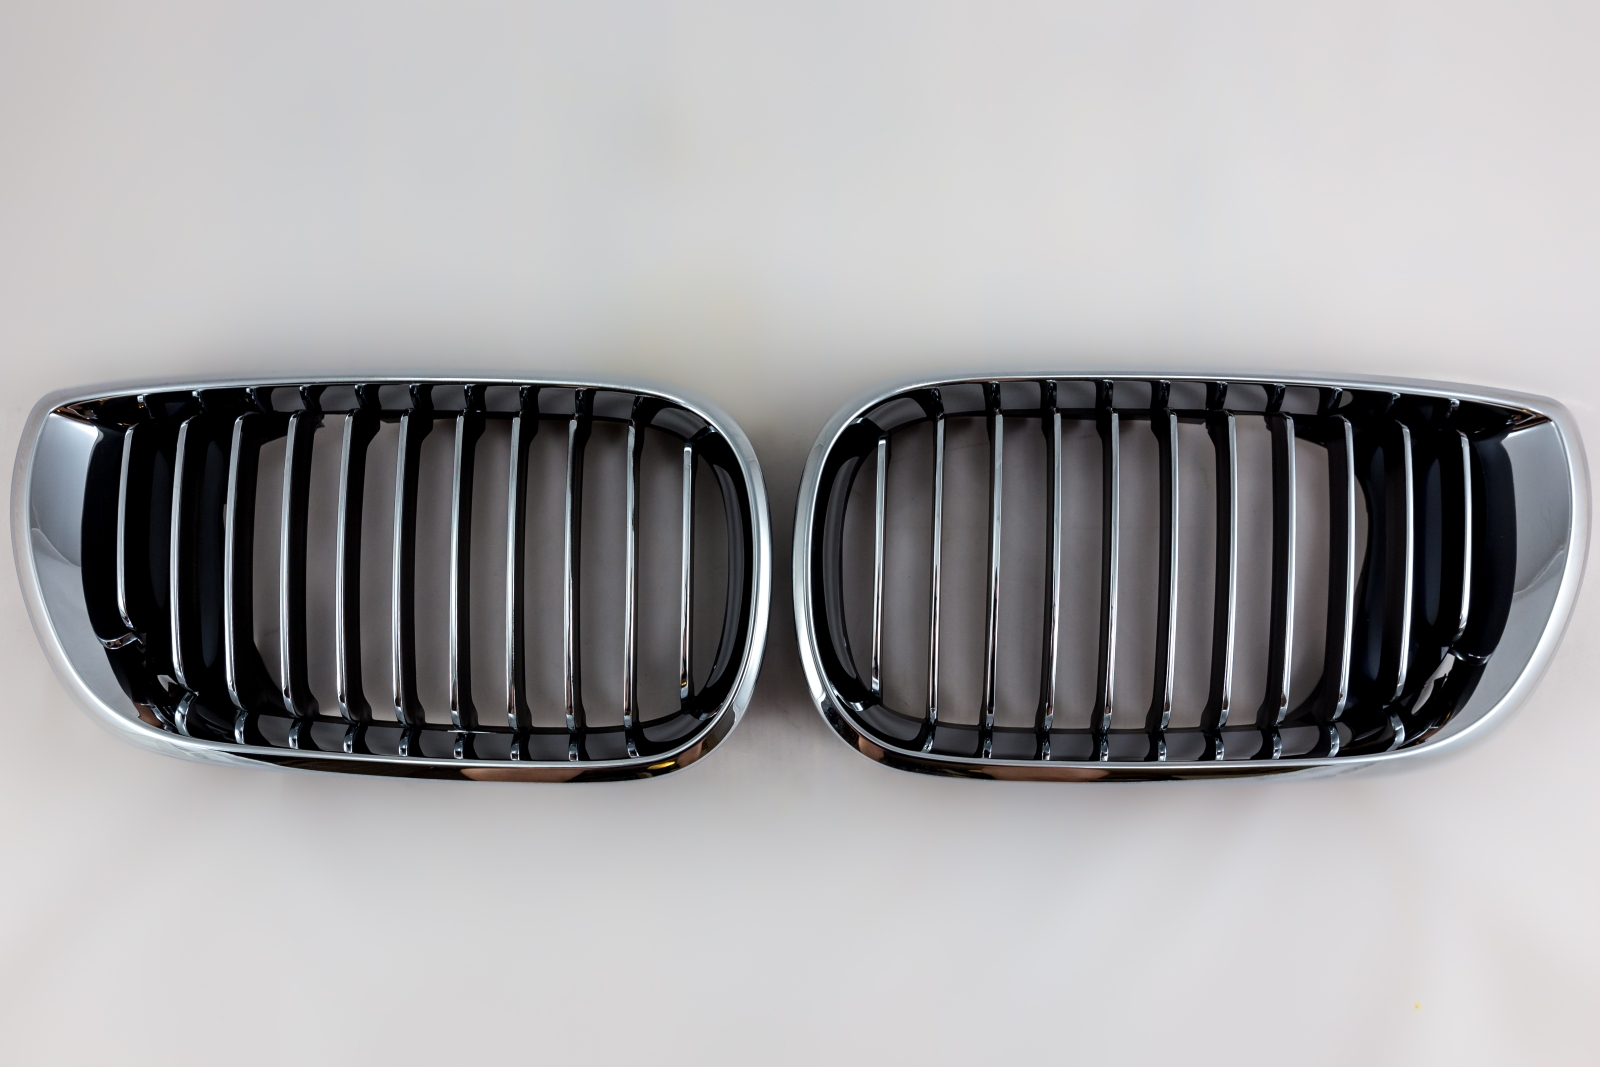 Kühlergrill Grill Nieren Chrom Links f. BMW 3 E46 LIMOUSINE TOURING 01-05